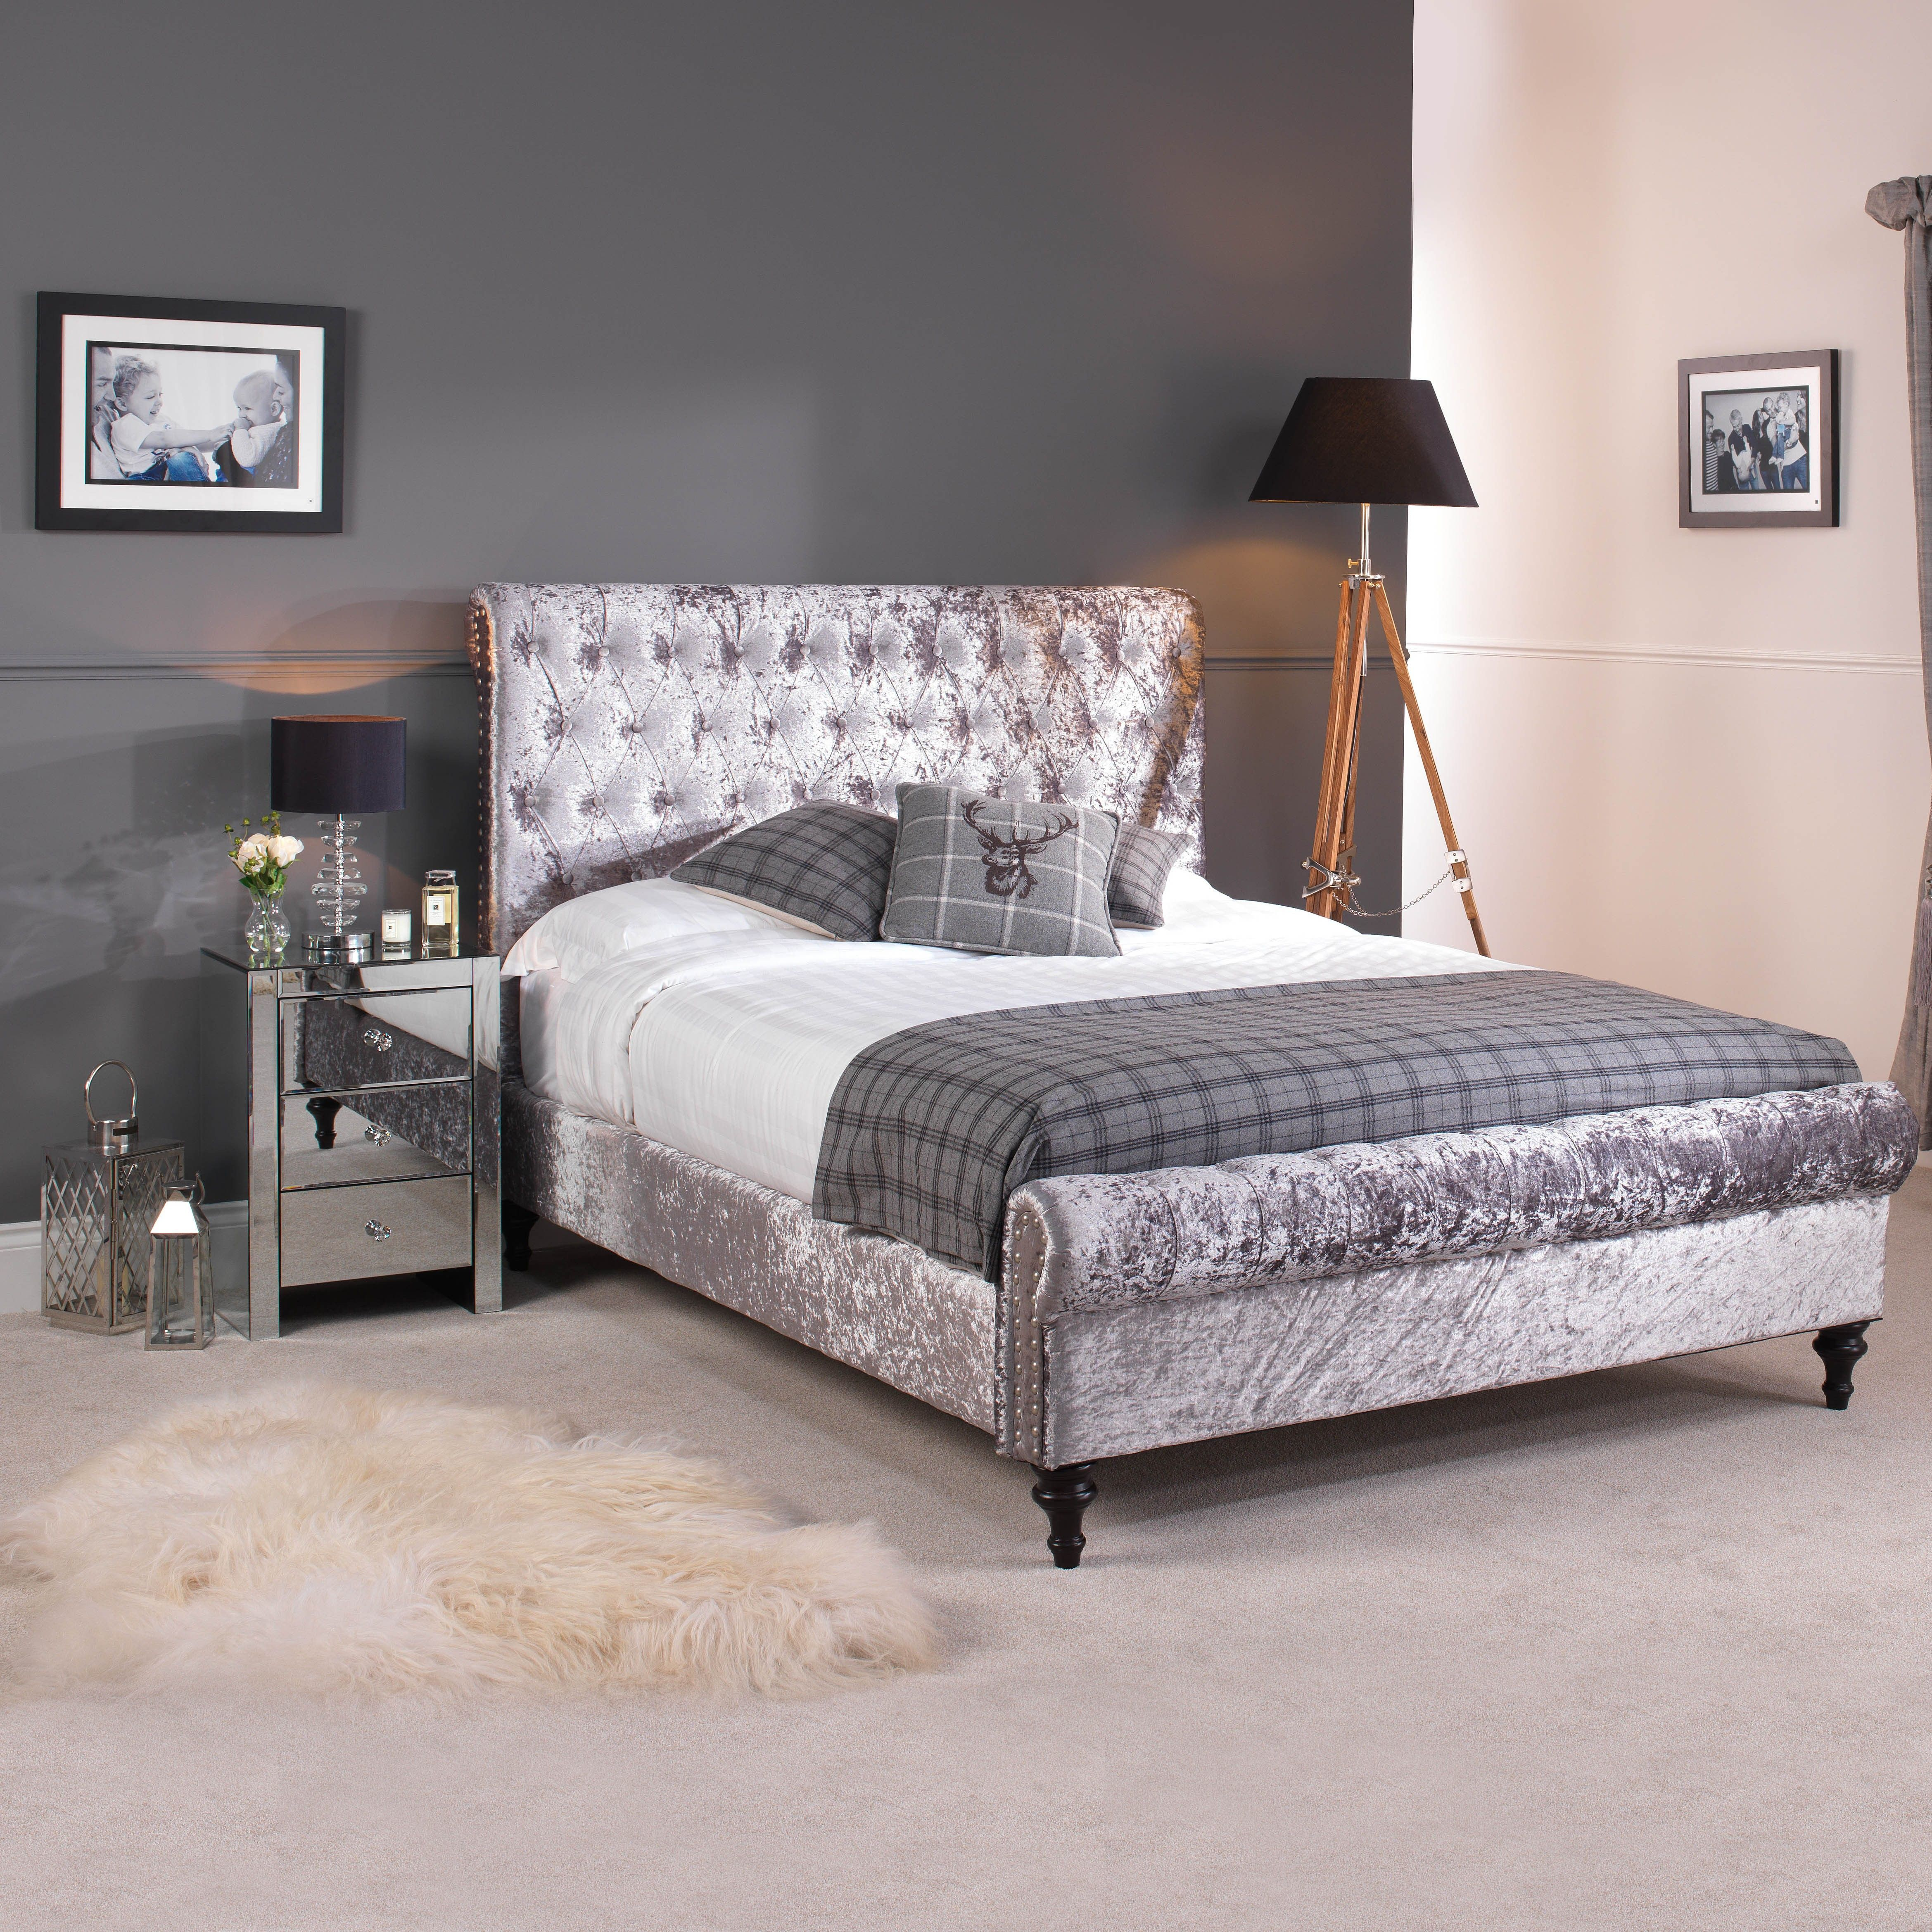 How Big Is A Super King Bed Go1220g 6 Super King Size Grey Premium Crushed Velvet Upholstered